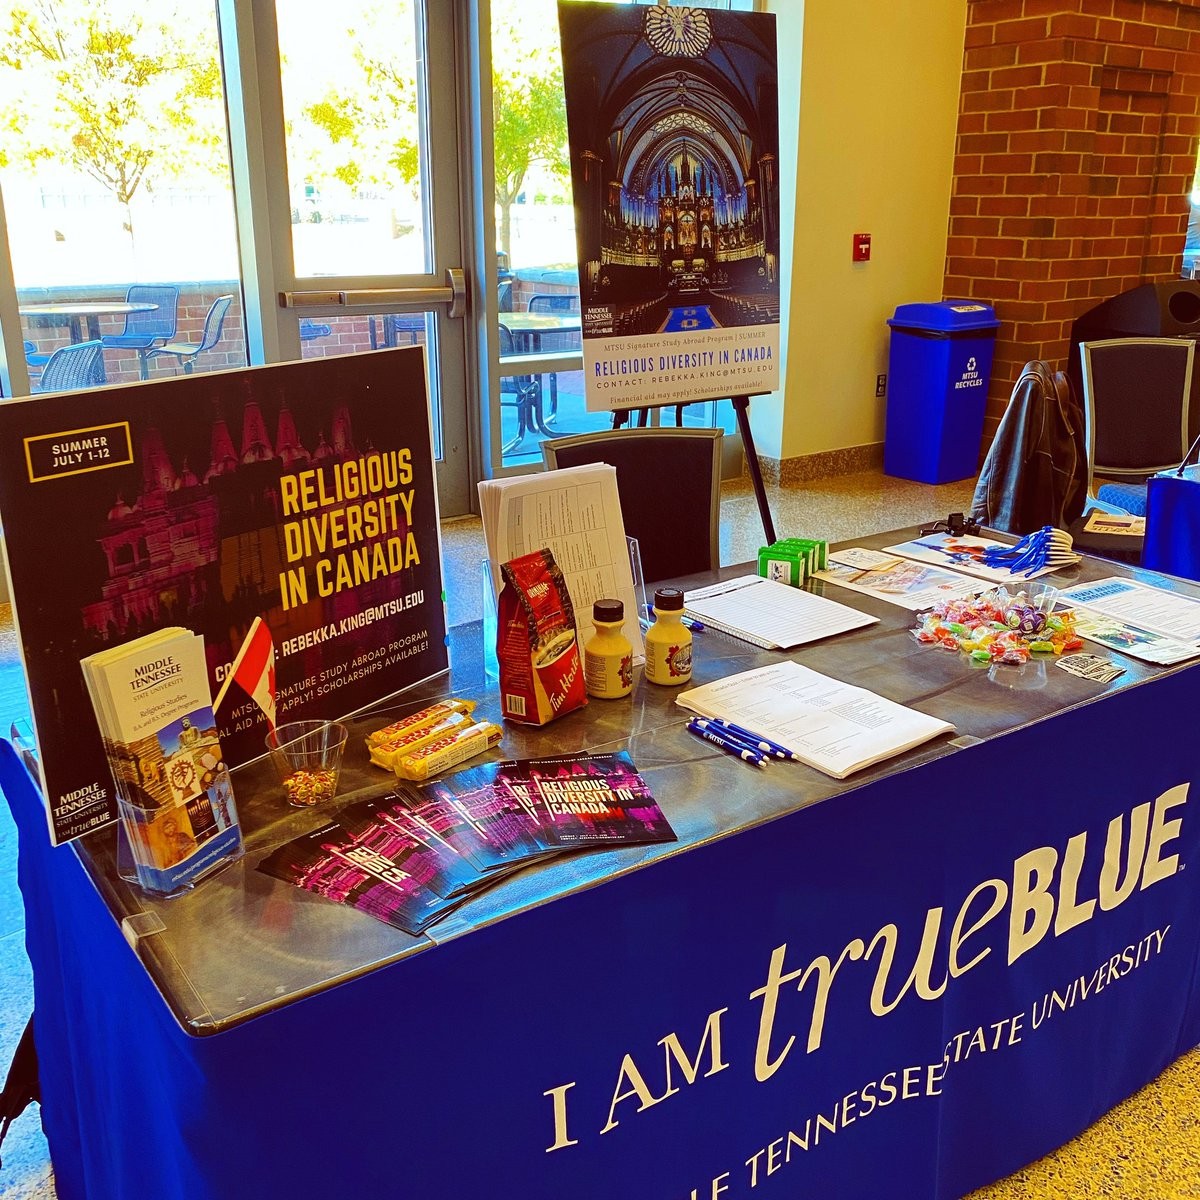 We are at the Study Abroad fair advertising Dr. King's Religious Diversity in Canada summer course. Come say hello and enter a trivia contest to win a Canadian themed prize! #mtsureligion #mtsuabroad #mtsu https://t.co/Dg54ihCMm2